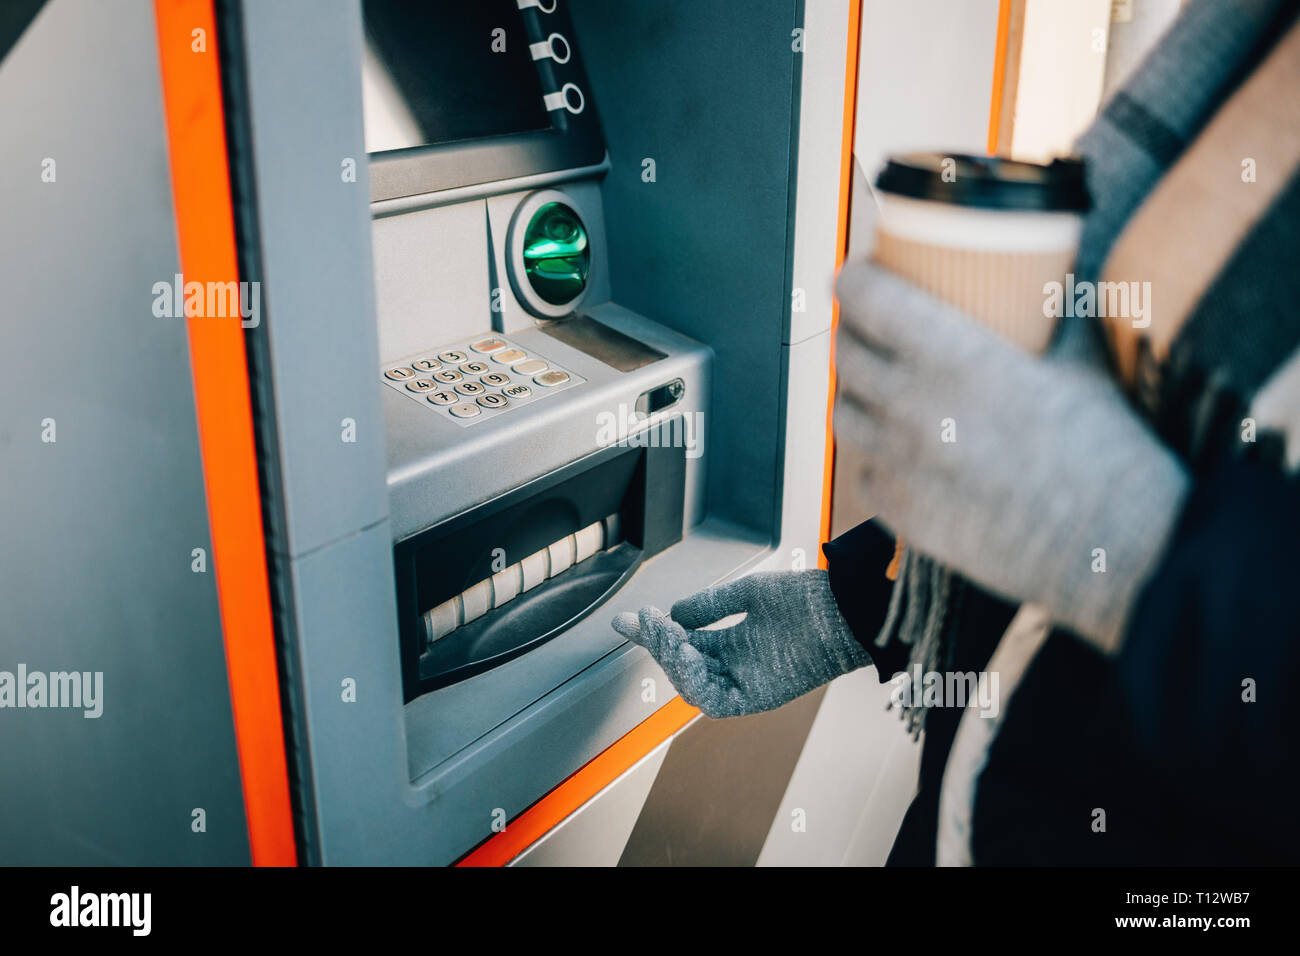 Unrecognizable young woman withdrawing cash using ATM and drinking coffee on city street in winter day, close-up. - Stock Image